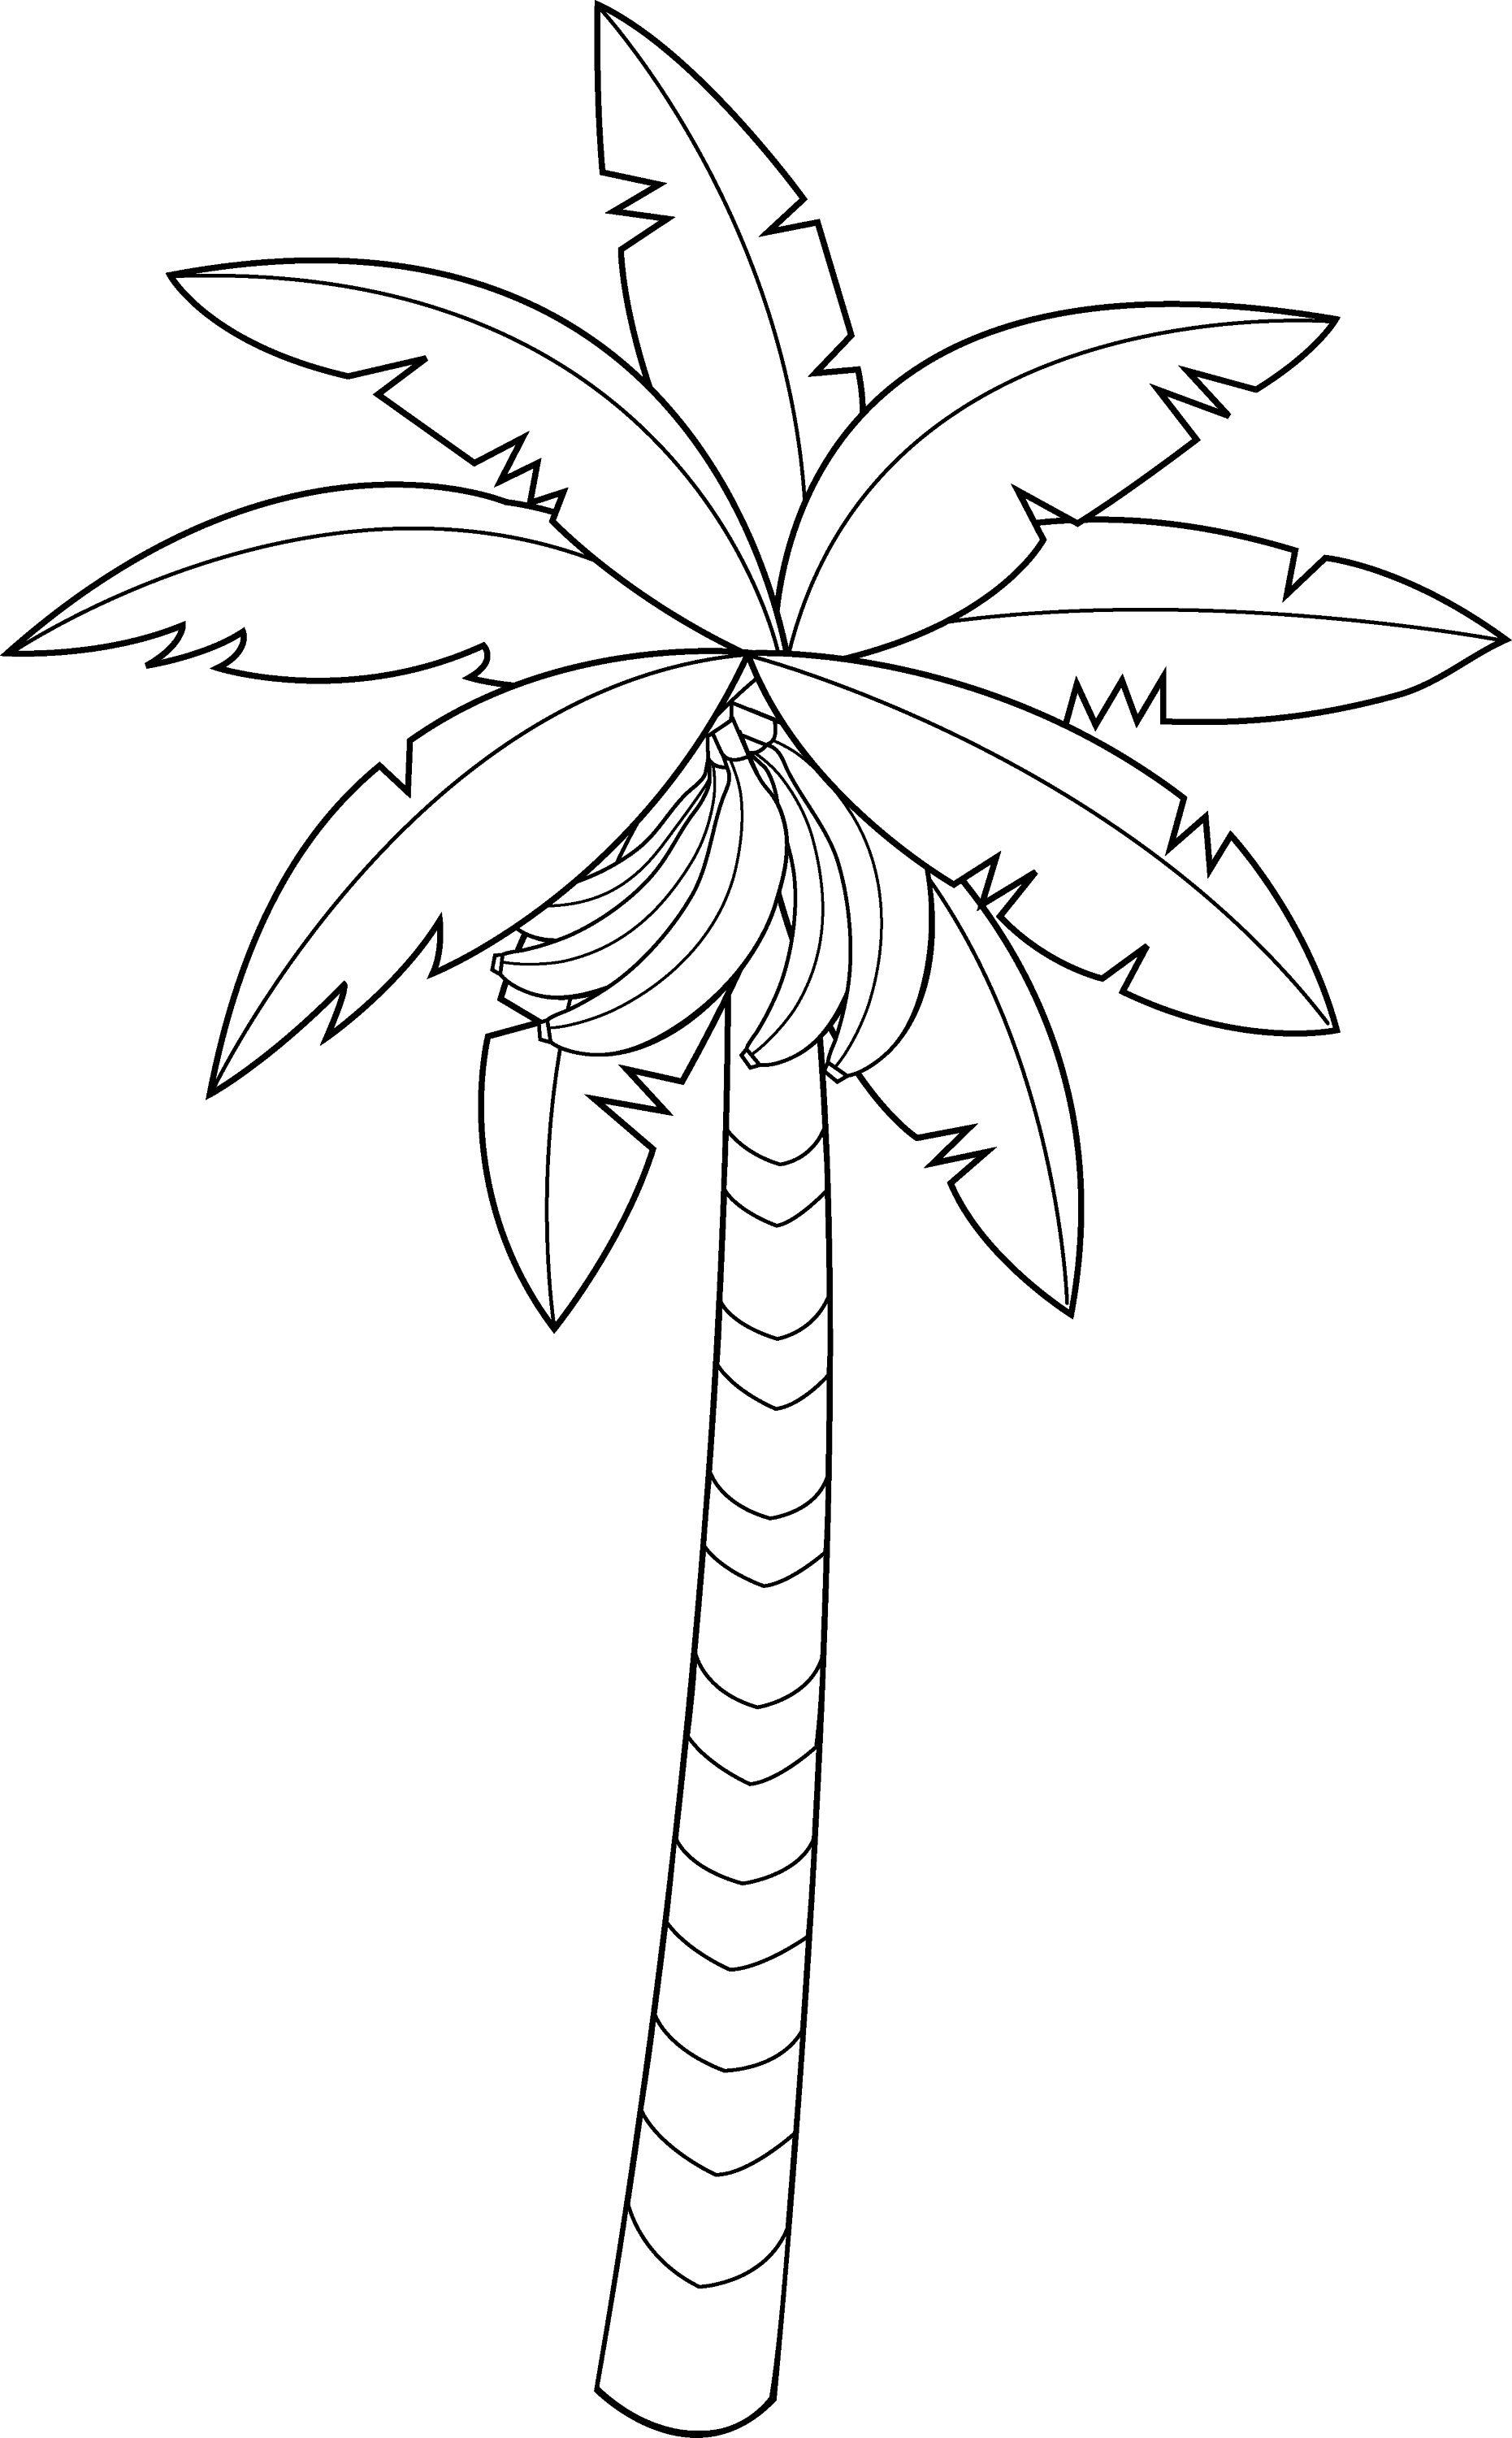 banana tree drawing png - photo #5